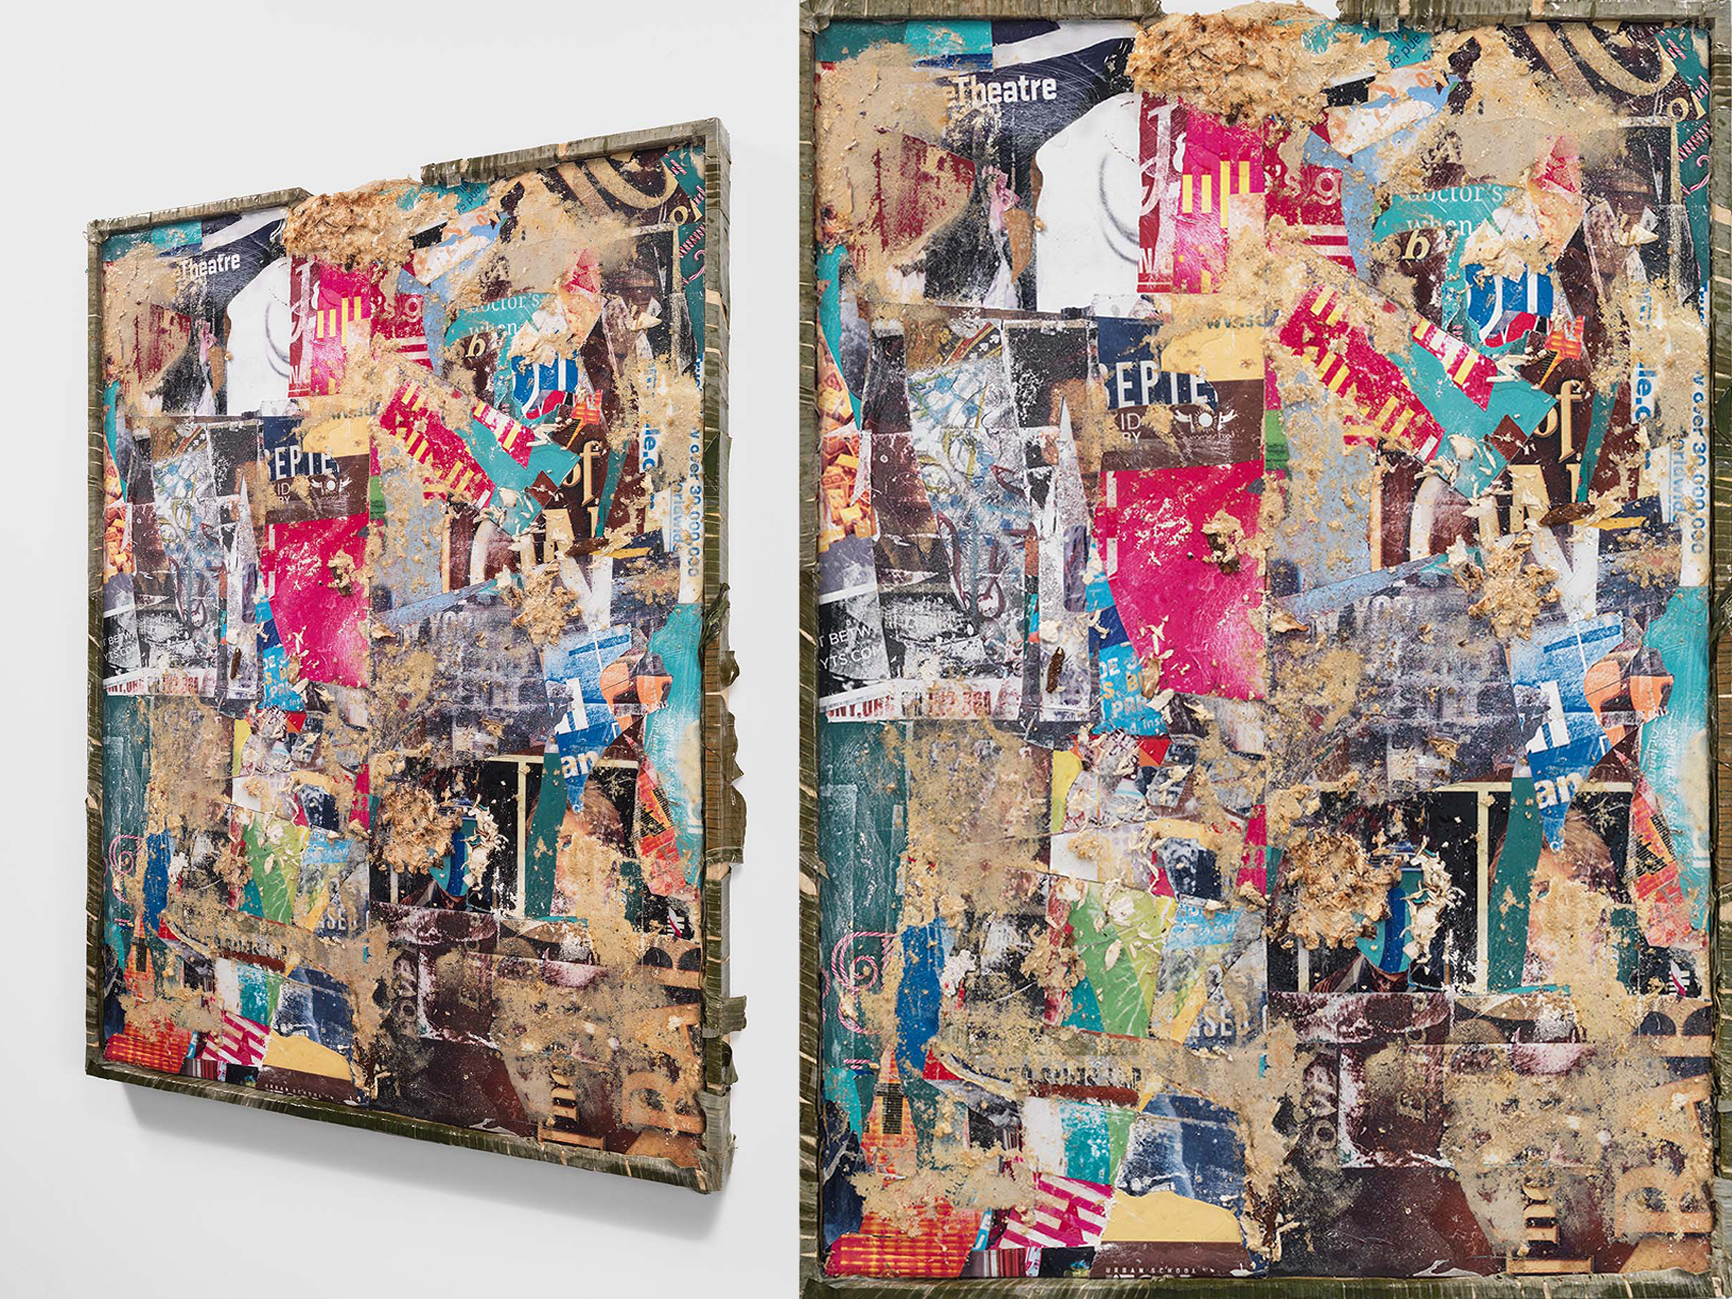 """""""Eye Level (after Stuart Davis)"""" frontal and angled views  Yucca and epoxy resin on found billboard advertisements;banana leaves and epoxy resin on wood  49¼ x 37¾ x 2½ in.  2016"""